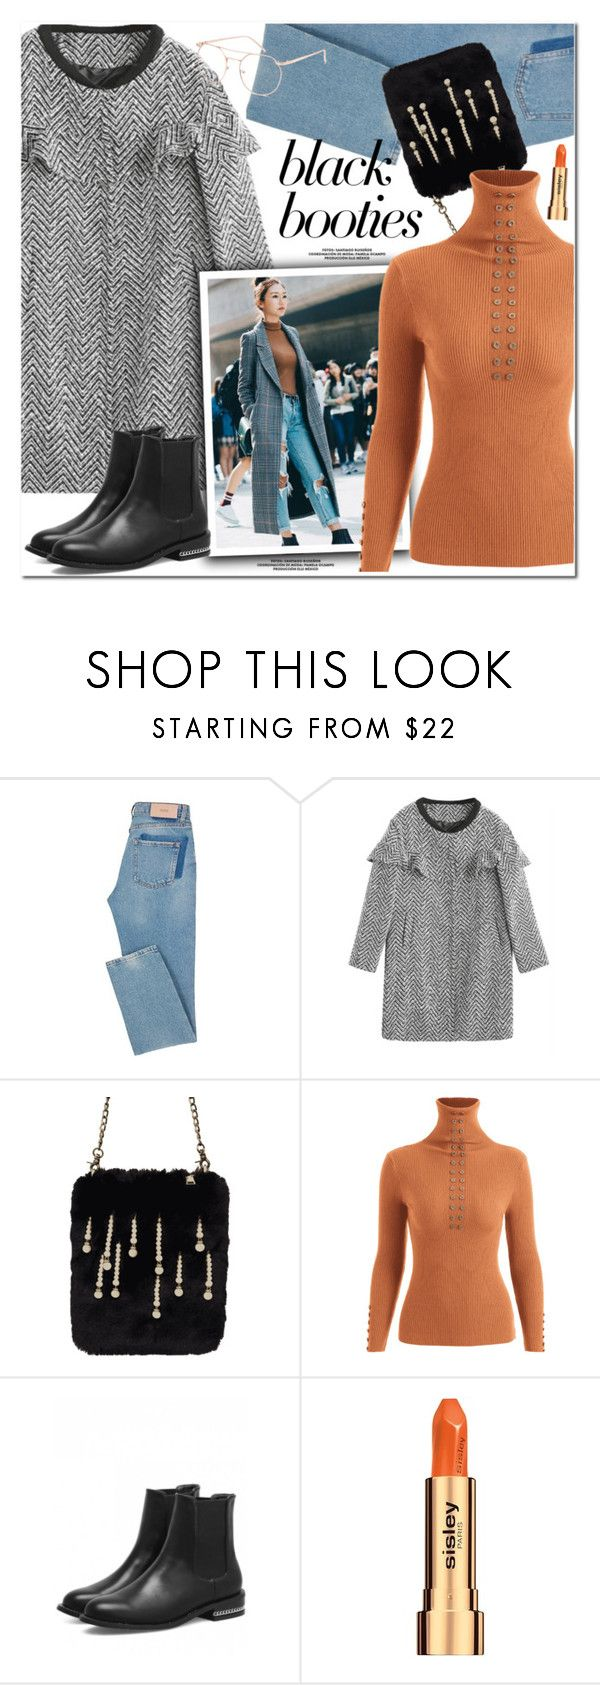 """Black Booties"" by oshint ❤ liked on Polyvore featuring Seoul Fashion, Sisley, Blue Crown, cool, fabulous, wonderful, blackbooties and zaful"